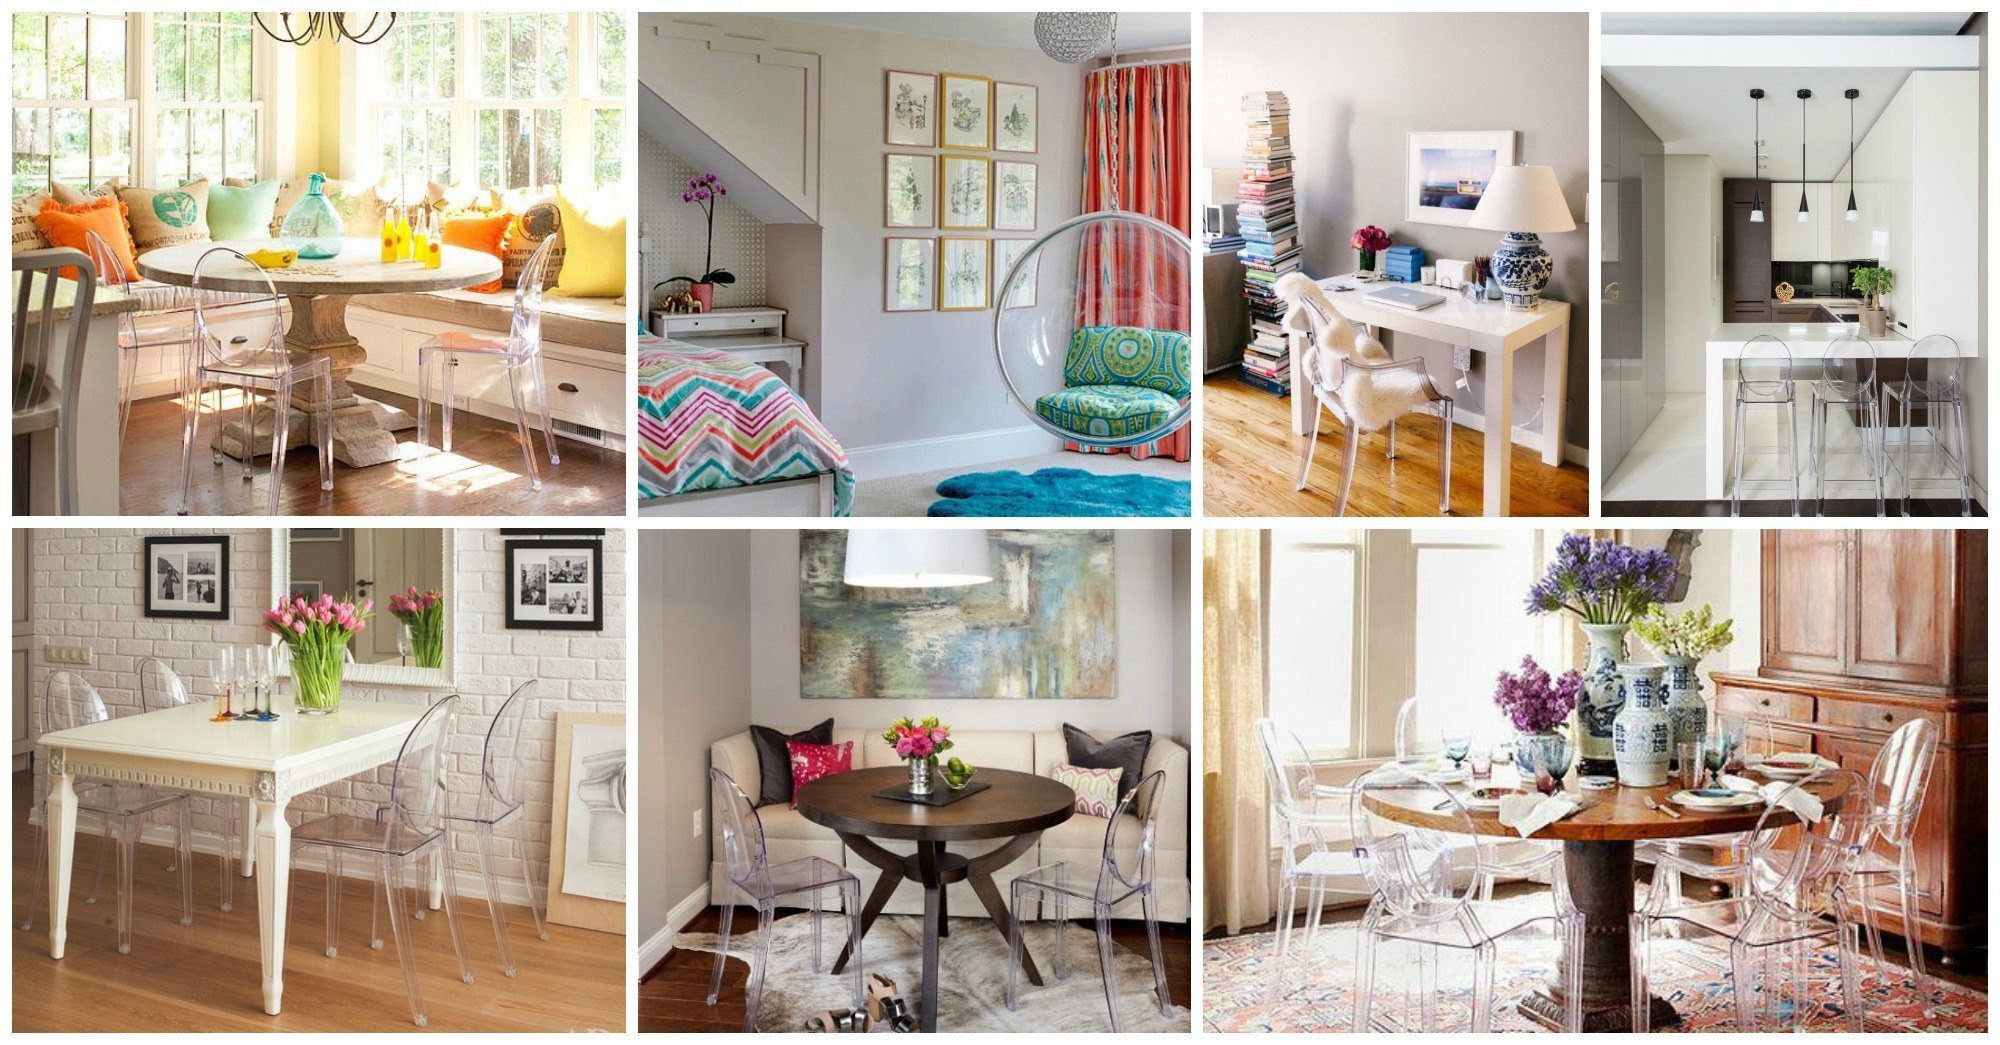 Lovely Acrylic Chairs to Add Uniqueness To Your Home